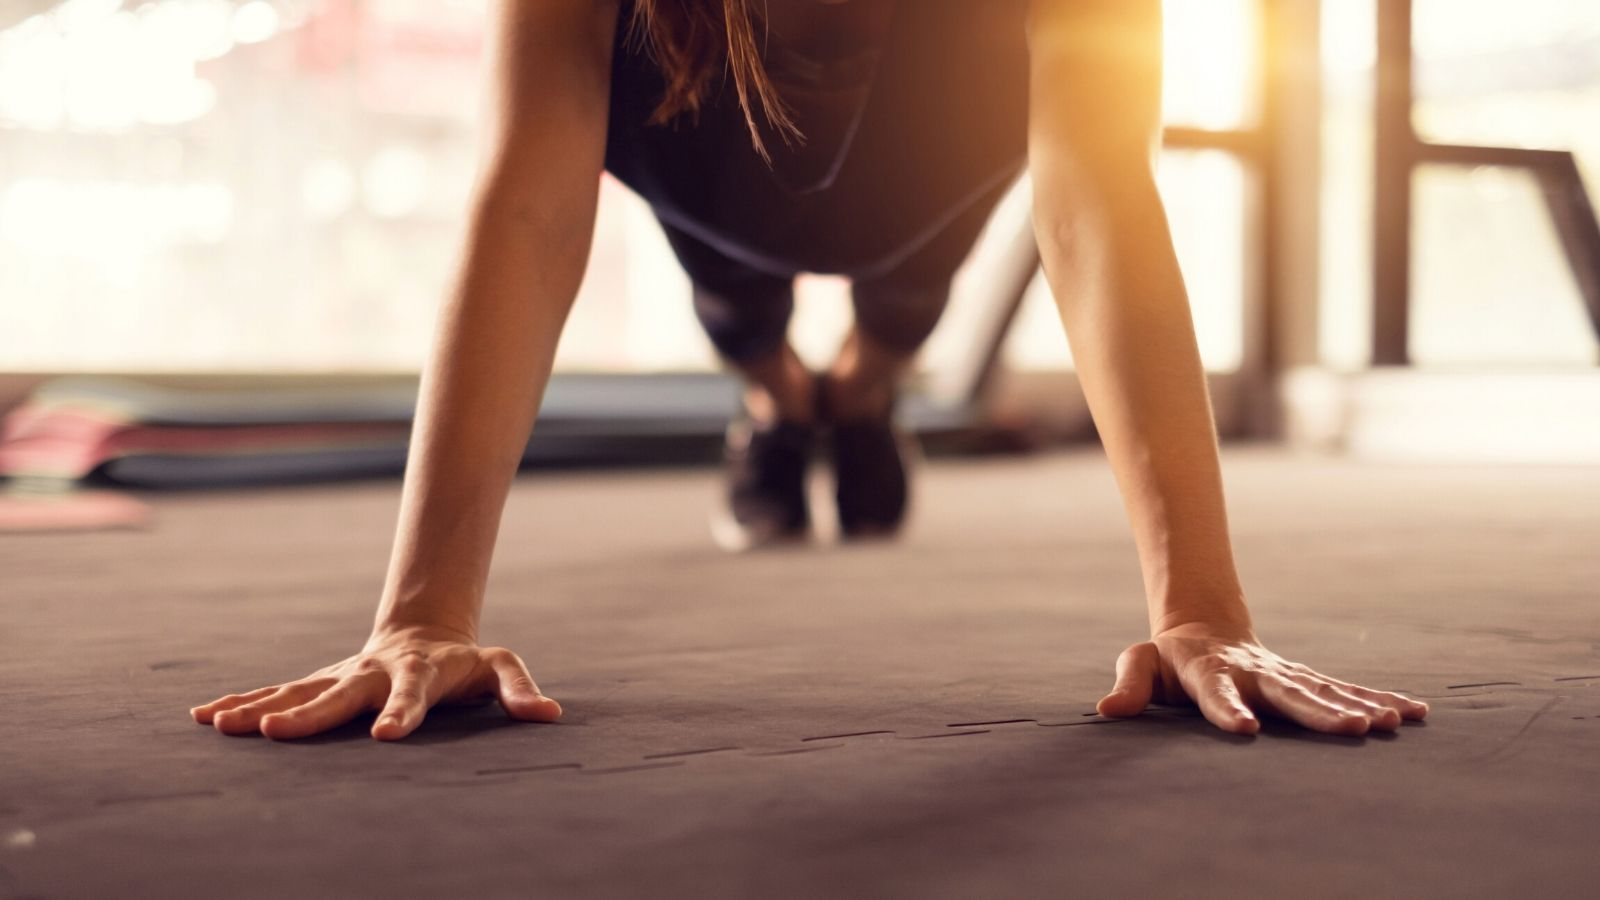 Doing the 7-minute workout daily can actually add years to your life